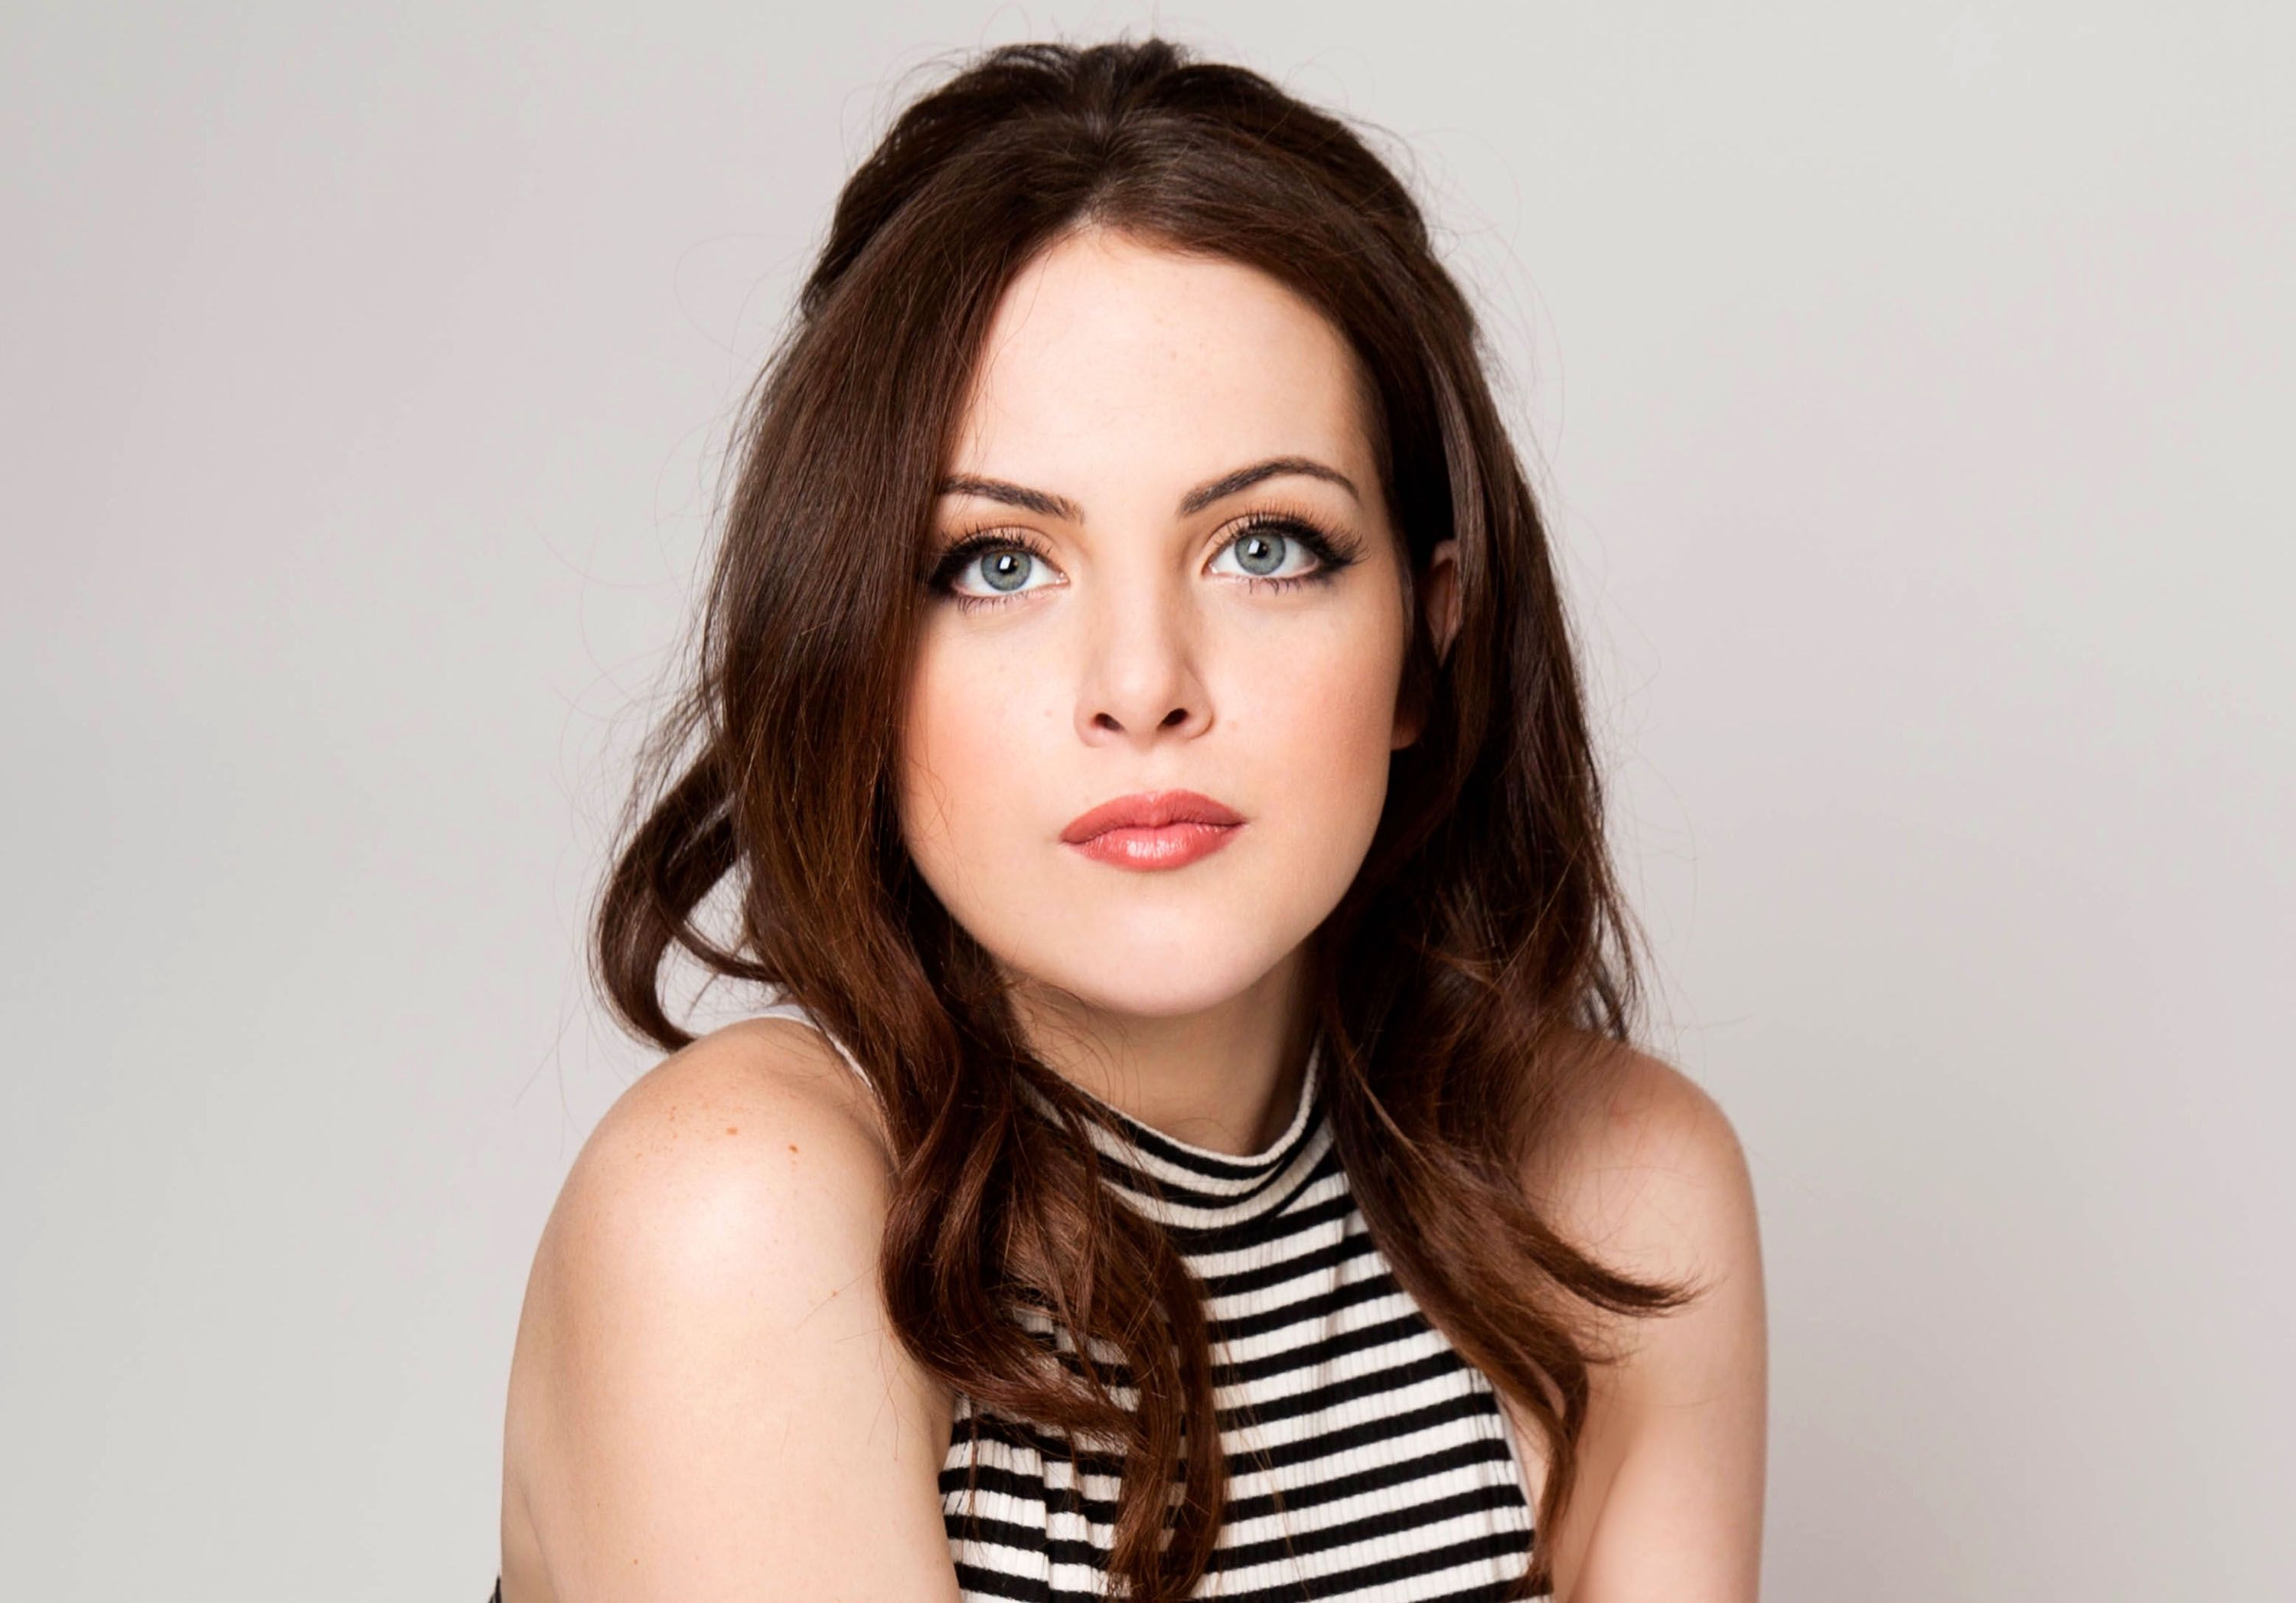 Pussy Is a cute Elizabeth Gillies naked photo 2017